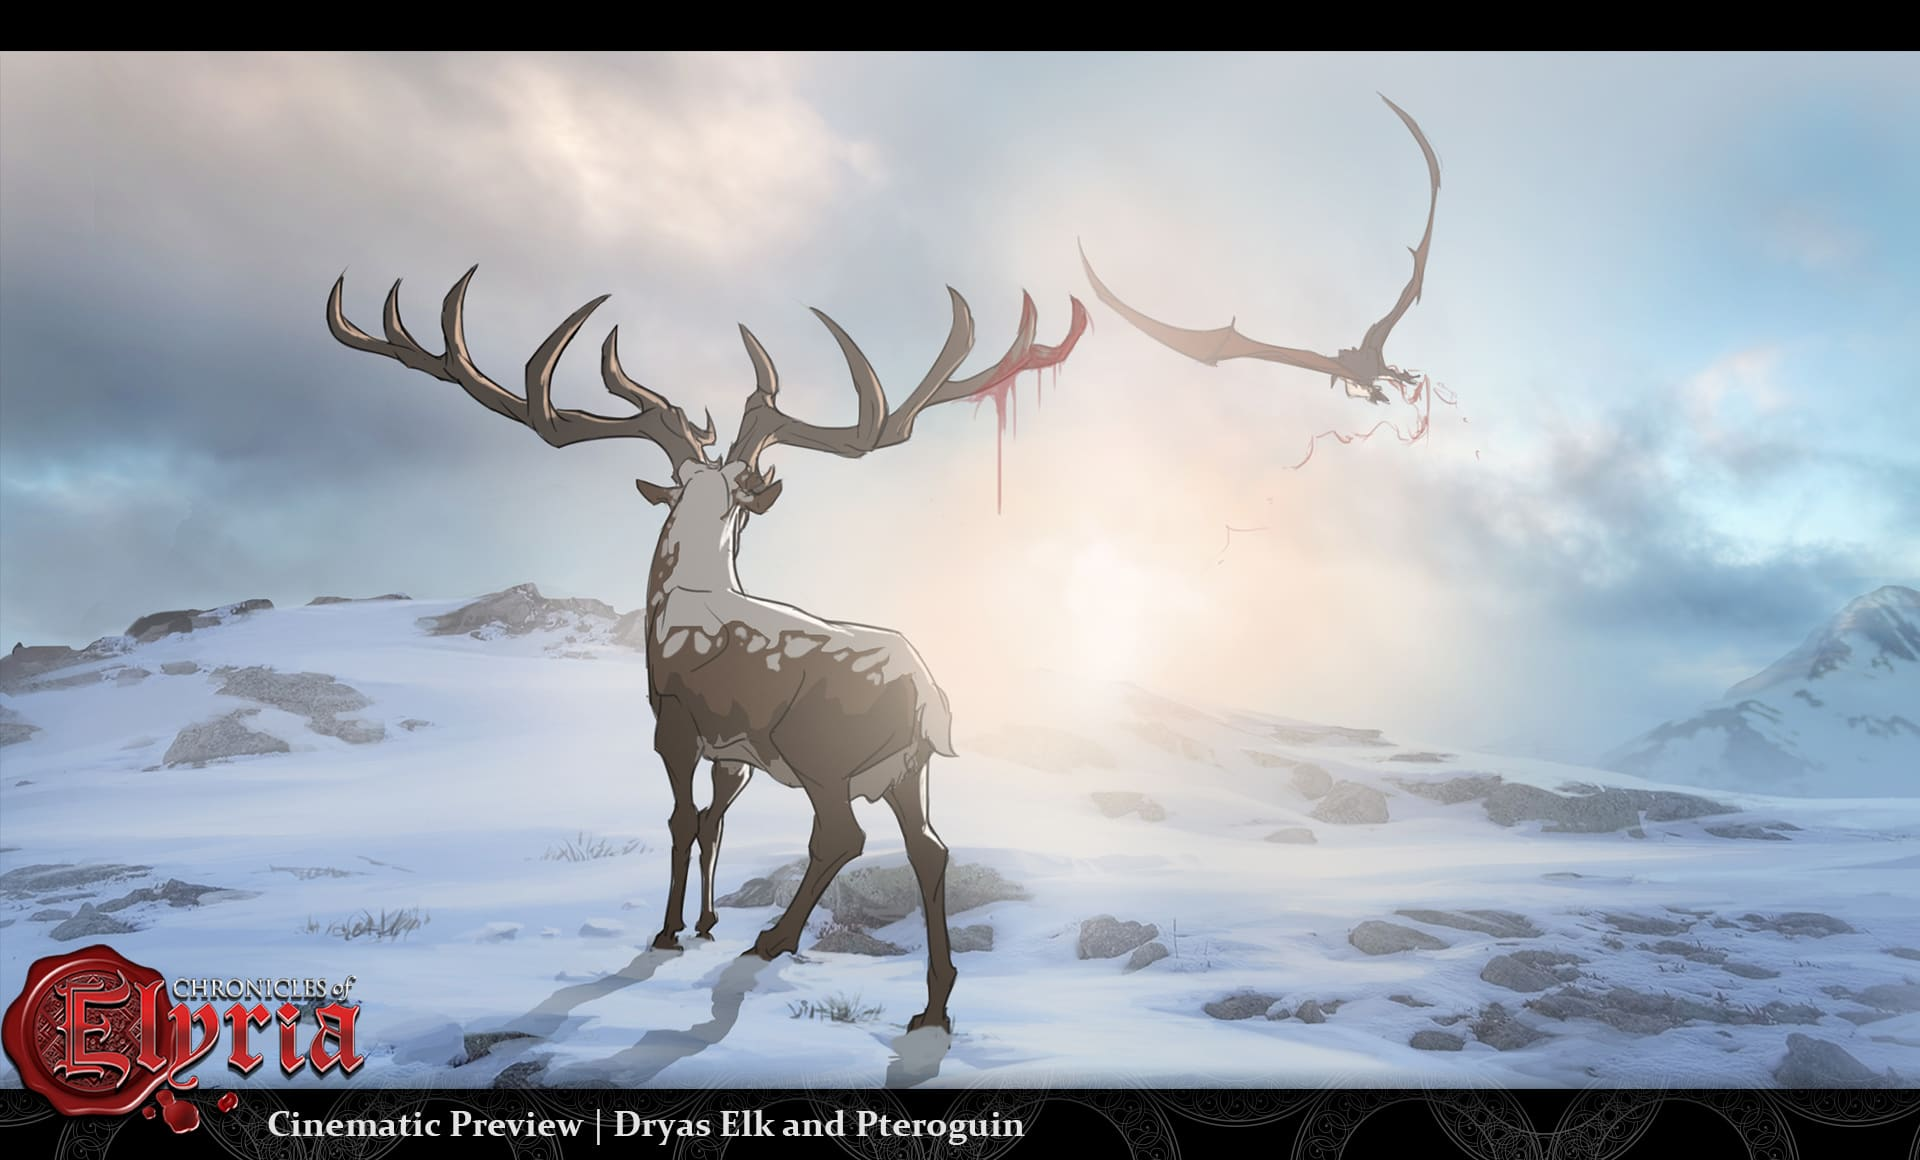 Cinematic Preview of a Dryas Elk and a Pteroguin